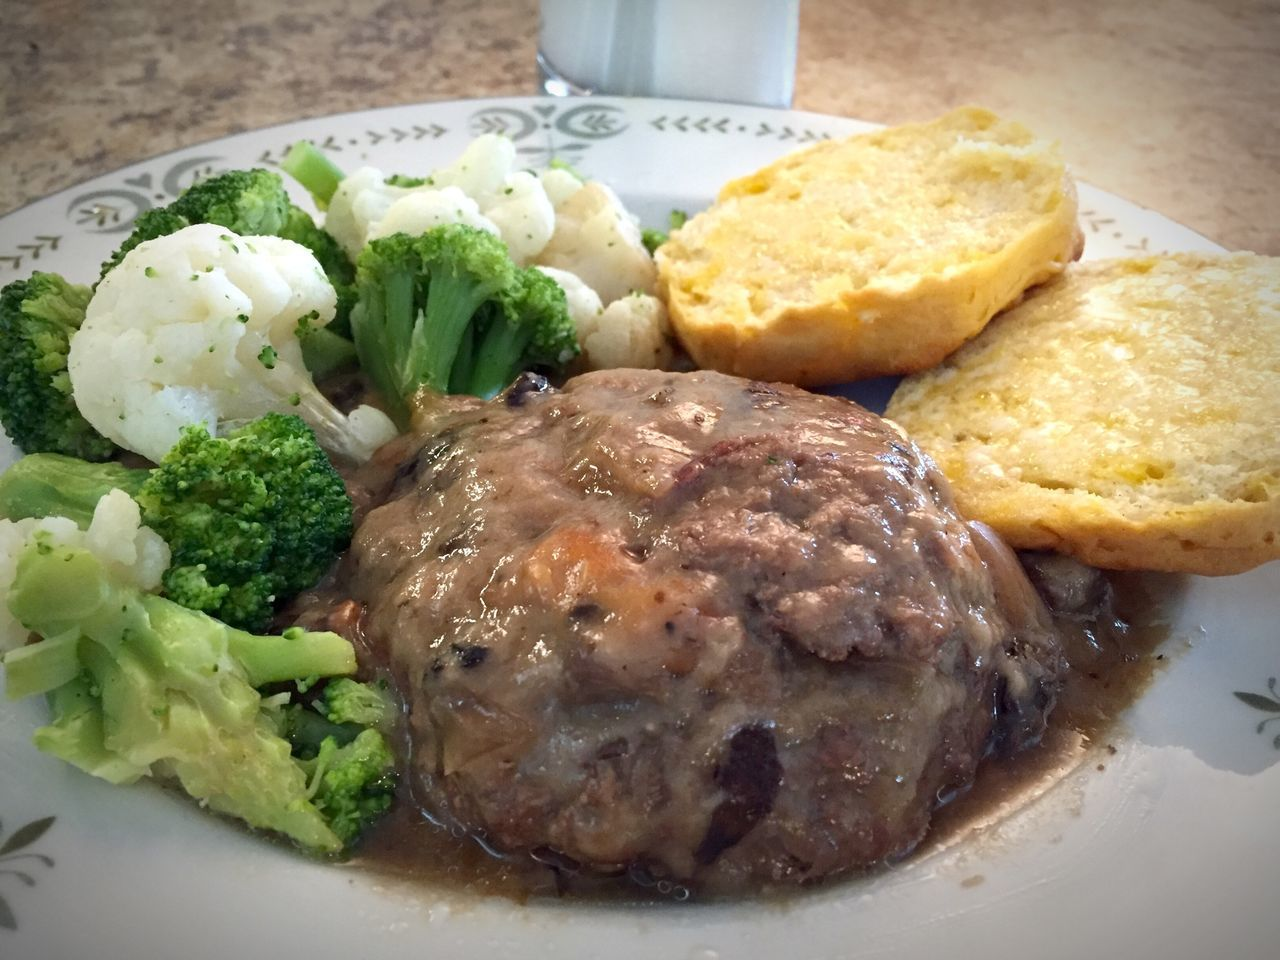 Hamburger steak with mushroom gravy and a side of broccoli & cauliflower. Biscuits Broccoli Cauliflower Close-up Dinner Food Freshness Hamburger Hamburger Steak Indulgence Lunch Meal Meat Mushroom Gravy No People Plate Ready-to-eat Served Serving Size Still Life Sunset Temptation